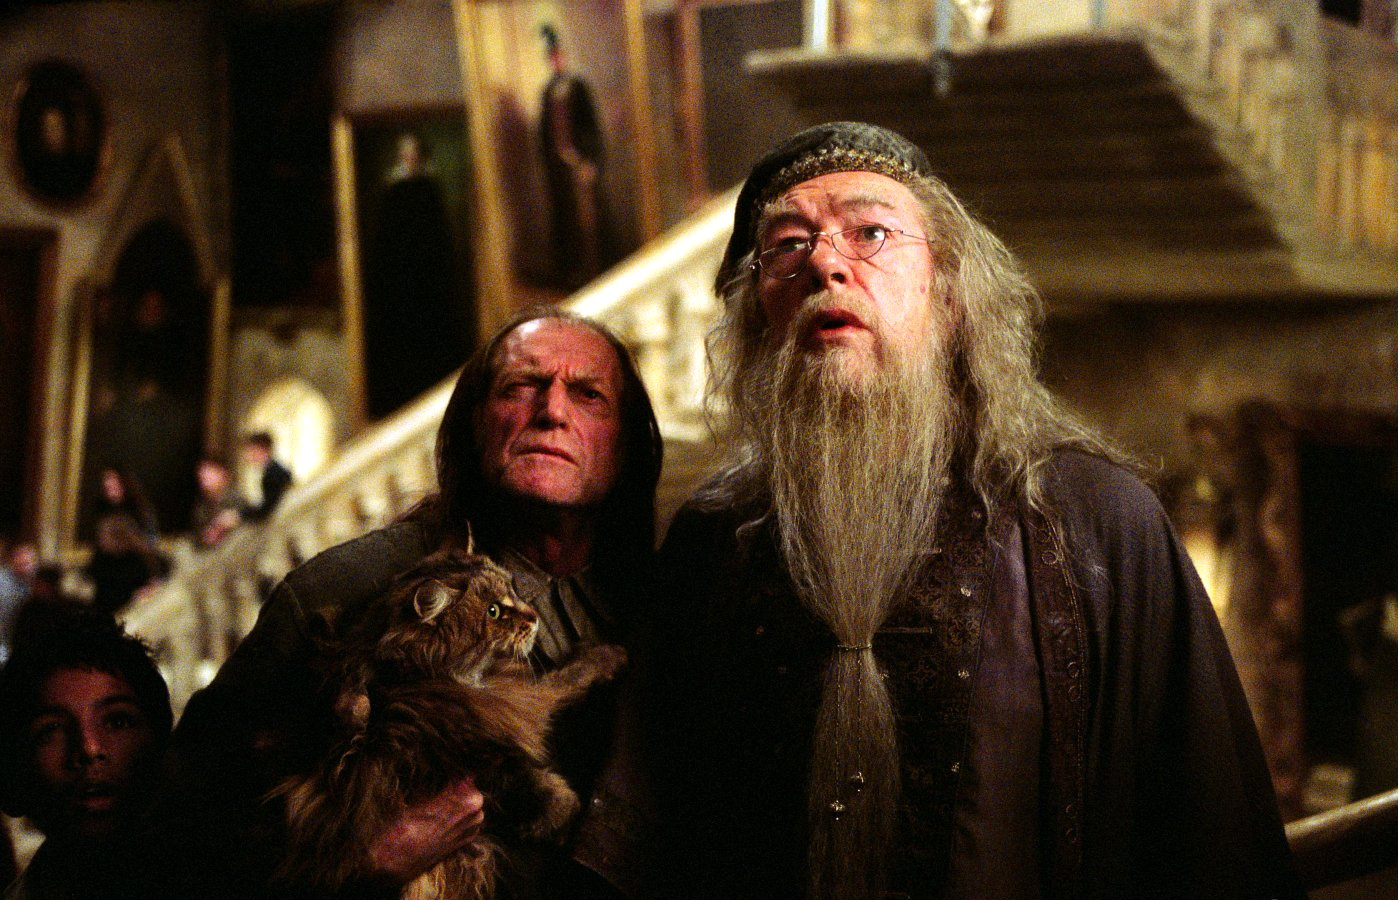 http://images.wikia.com/harrypotter/images/b/bf/Albus-filch.jpg